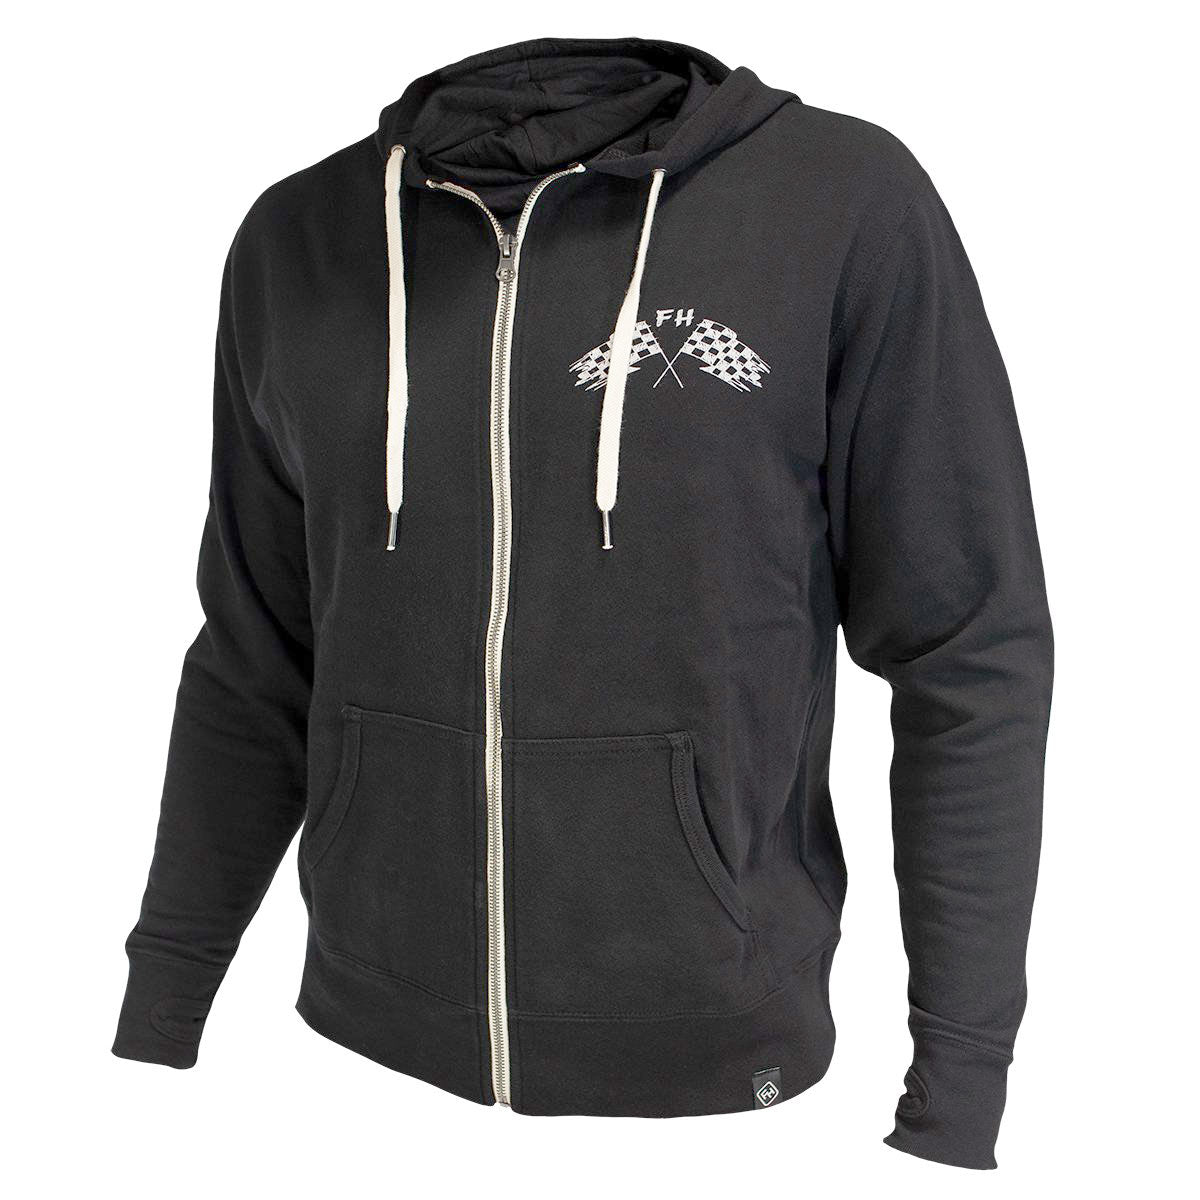 Finish Line Zip Up Hoodie - Black